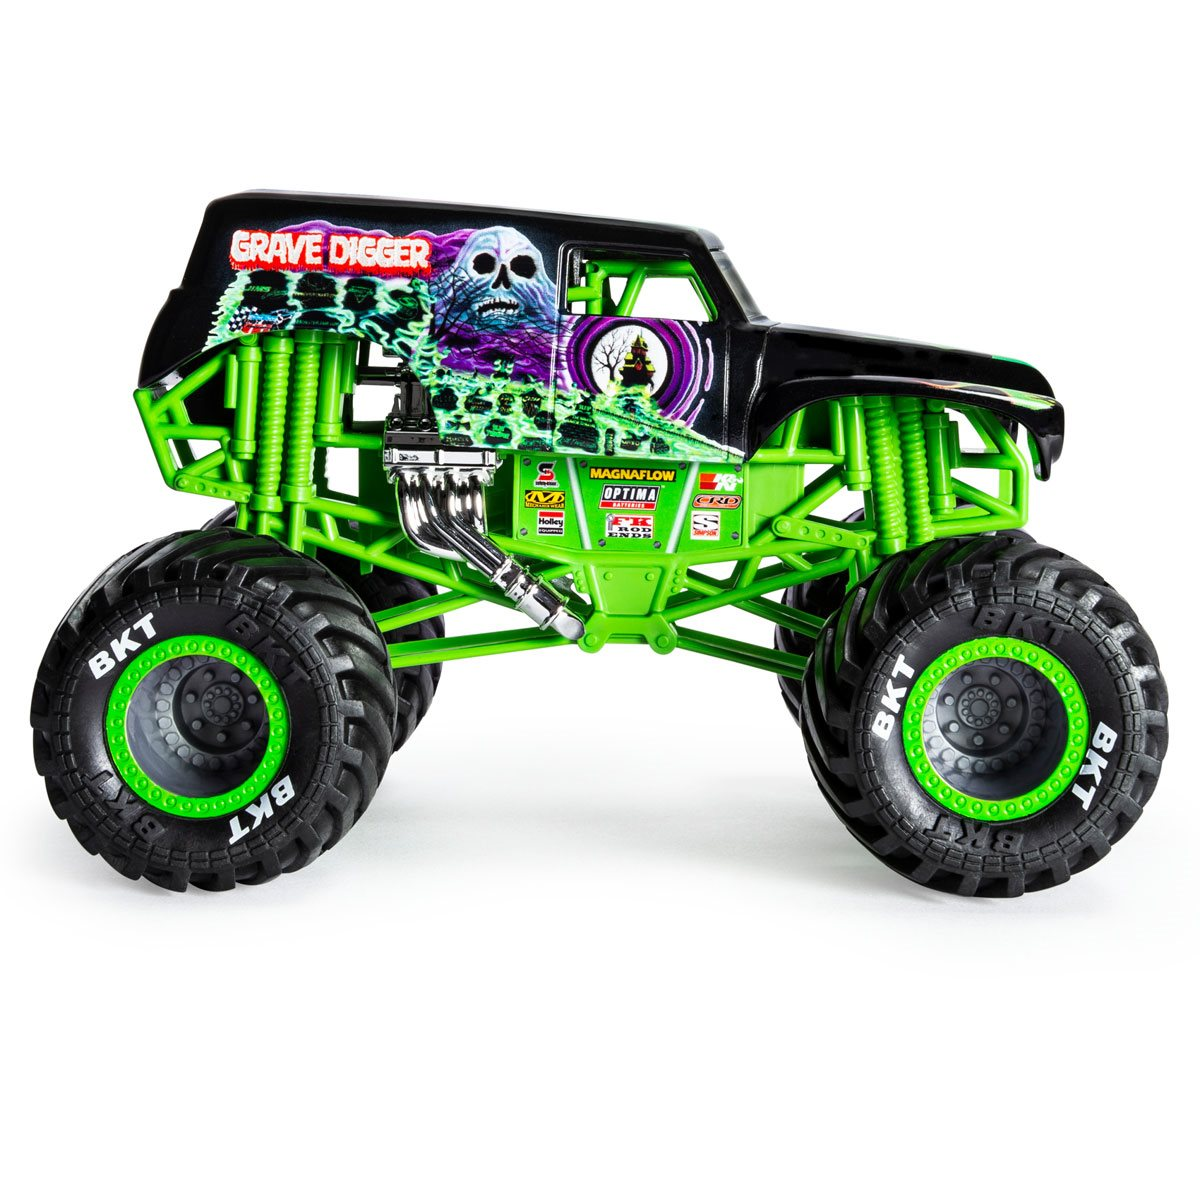 Monster Jam Grave Digger Monster Truck 1 24 Scale Die Cast Vehicle